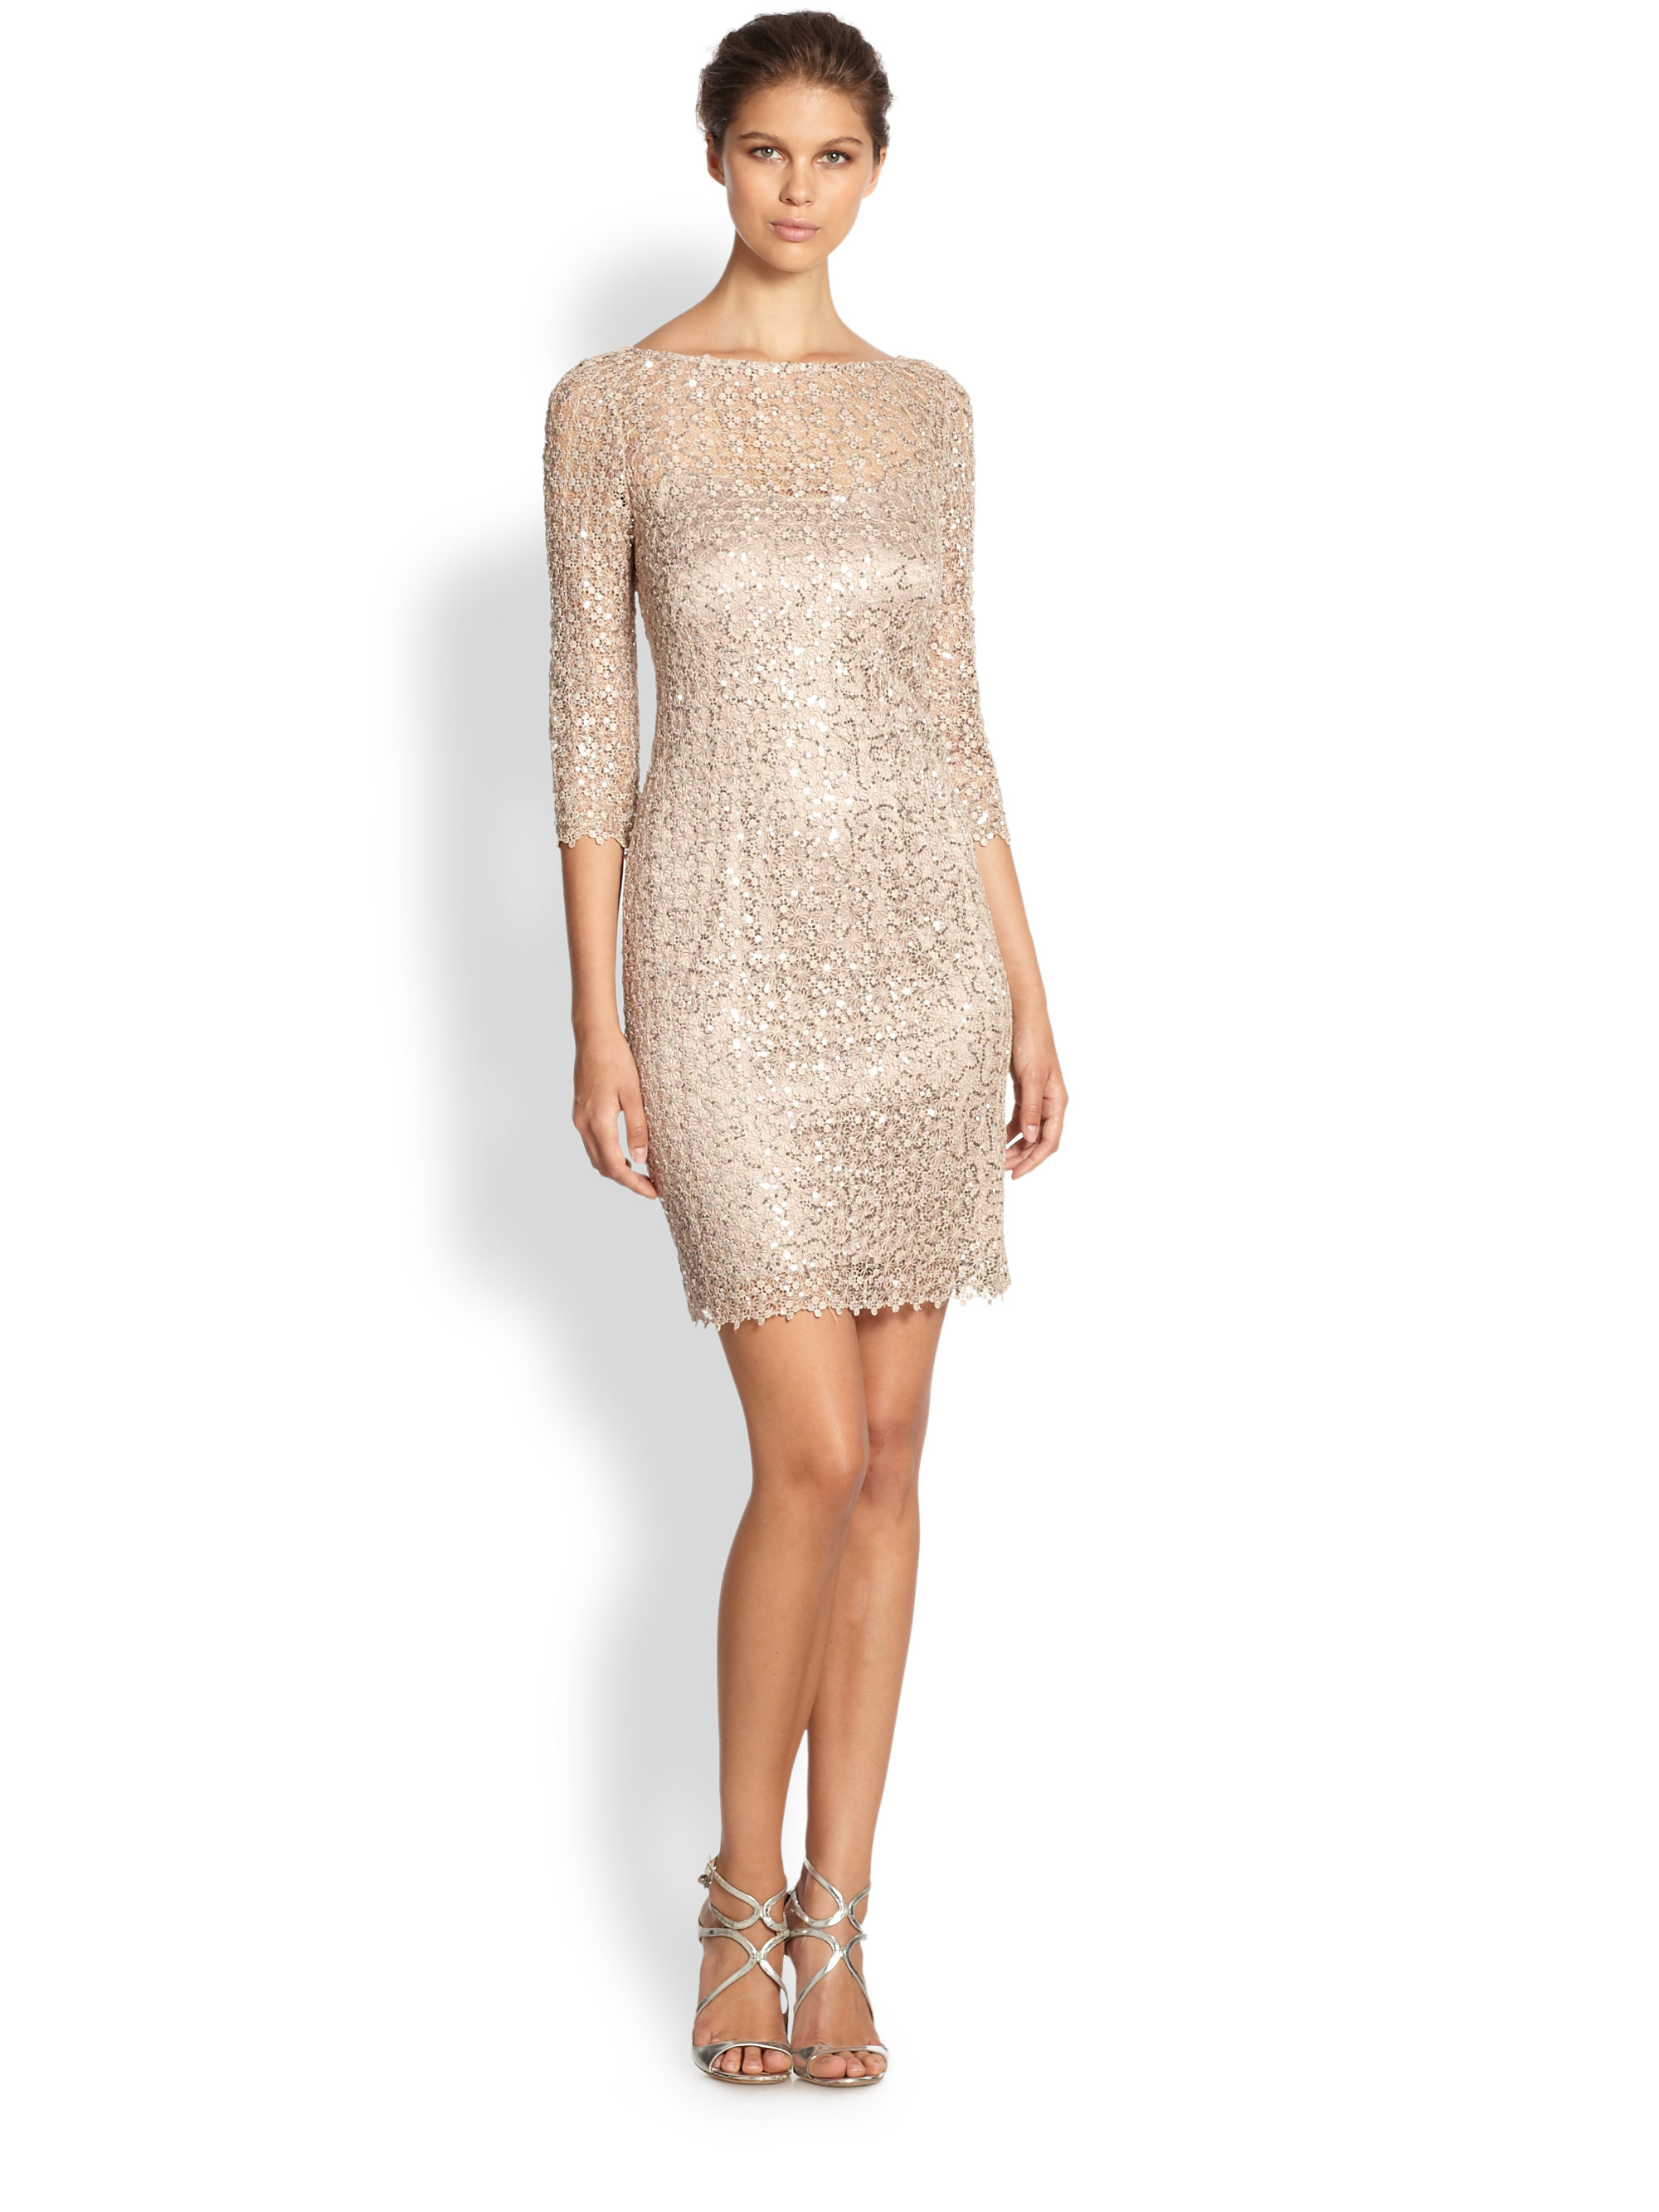 Lyst - Kay Unger Sequined Lace Dress in Metallic